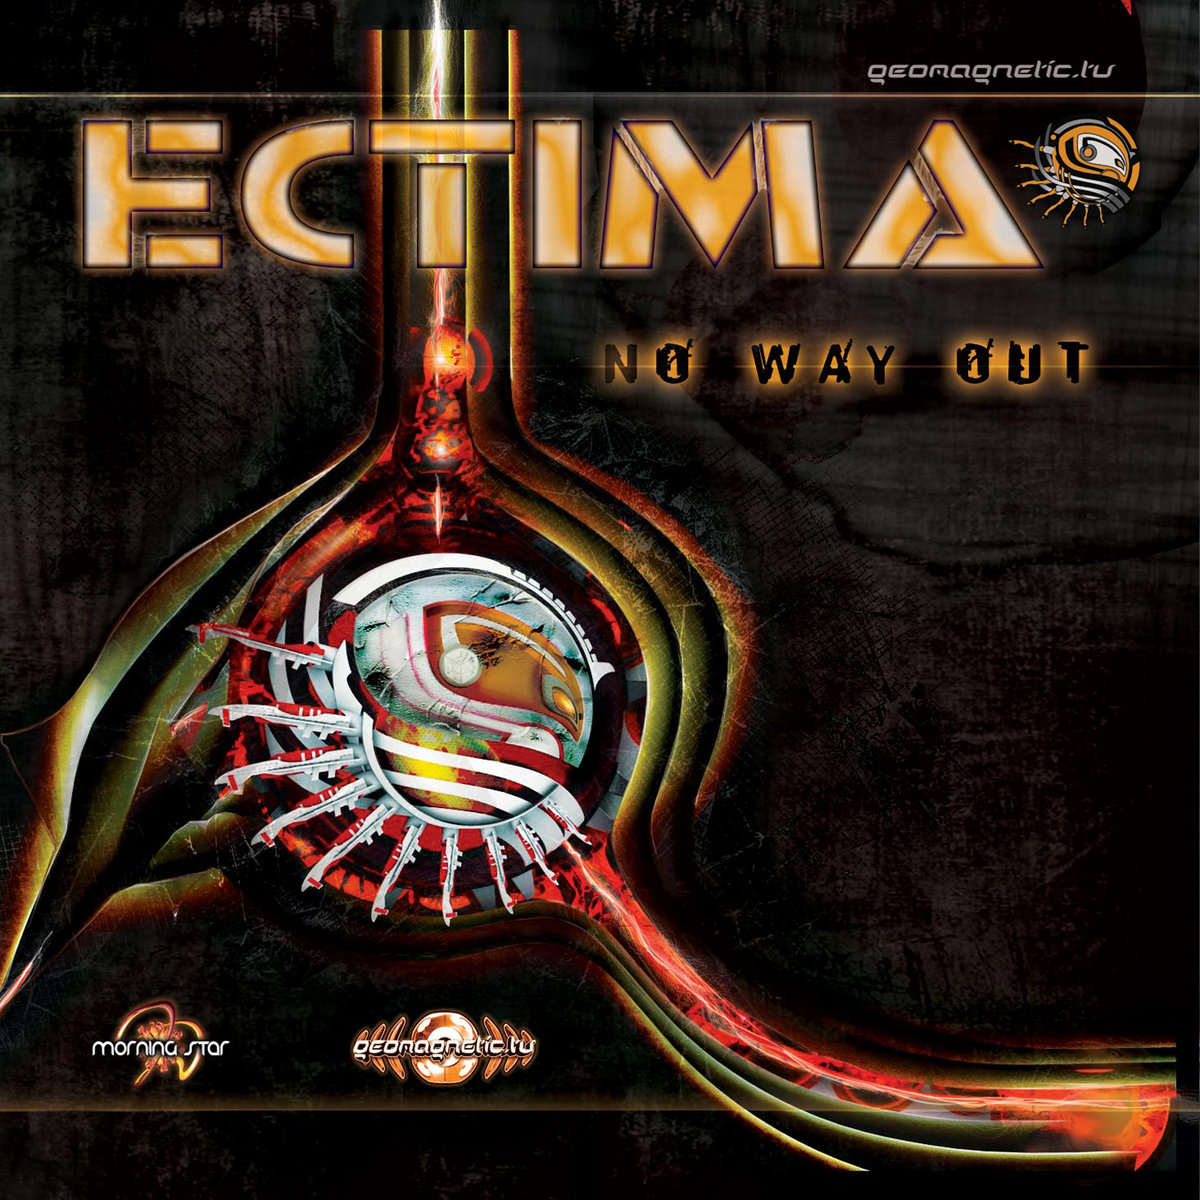 Ectima - Home Treatment @ 'No Way Out' album (electronic, goa)